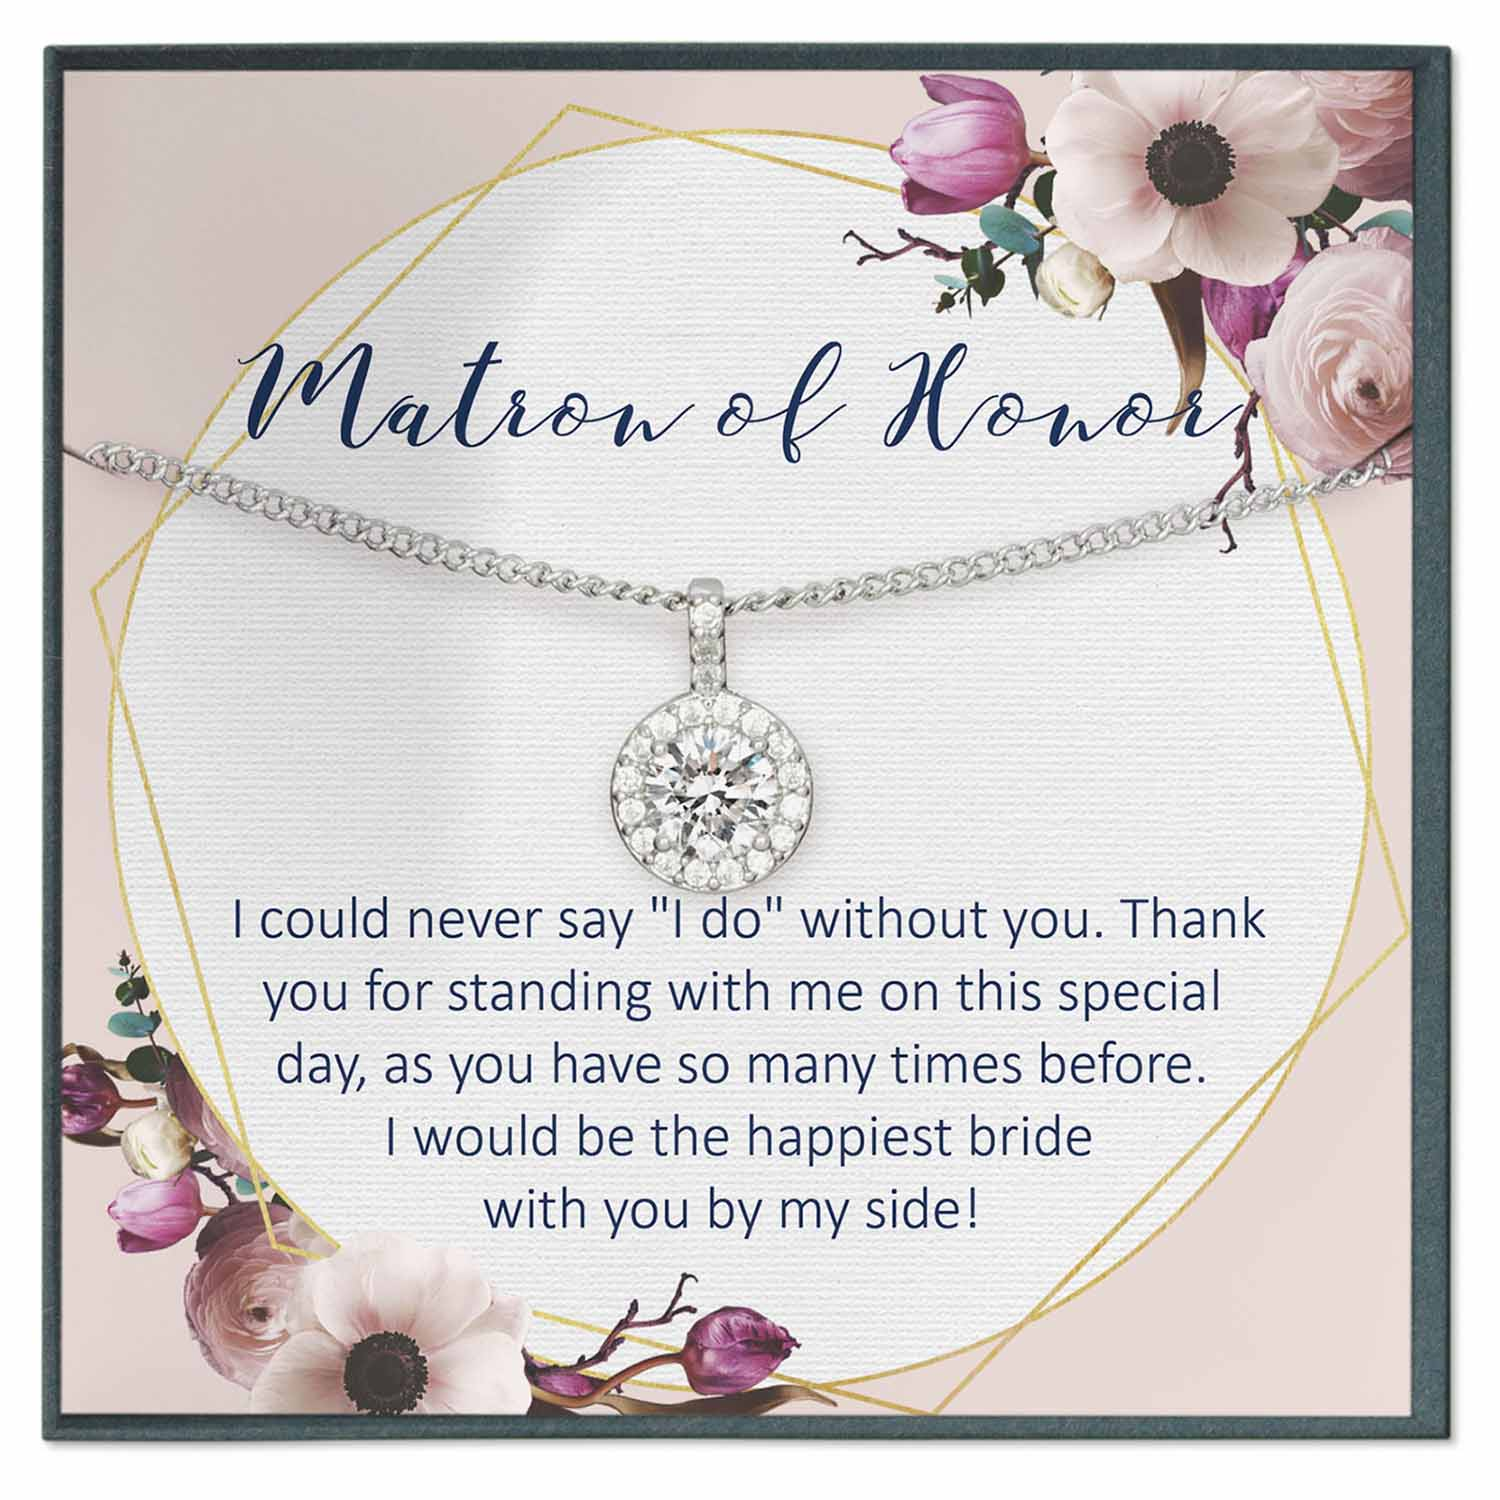 Matron of Honor Proposal Gift